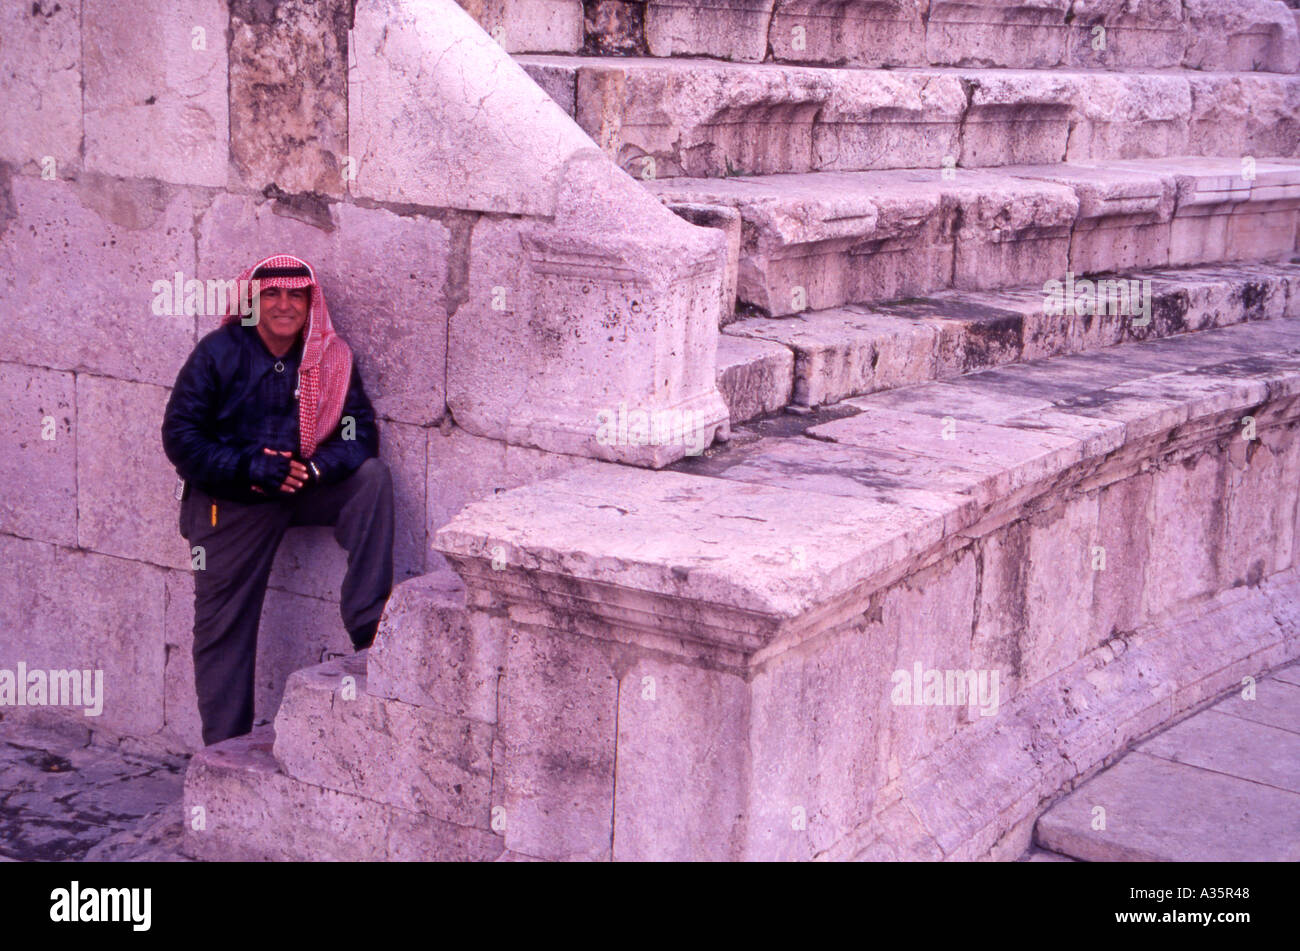 Steve an official Tour Guide at the Roman Amphitheatre in Amman Jordan wearing the traditional Jordanian Keffiyeh head cloth - Stock Image